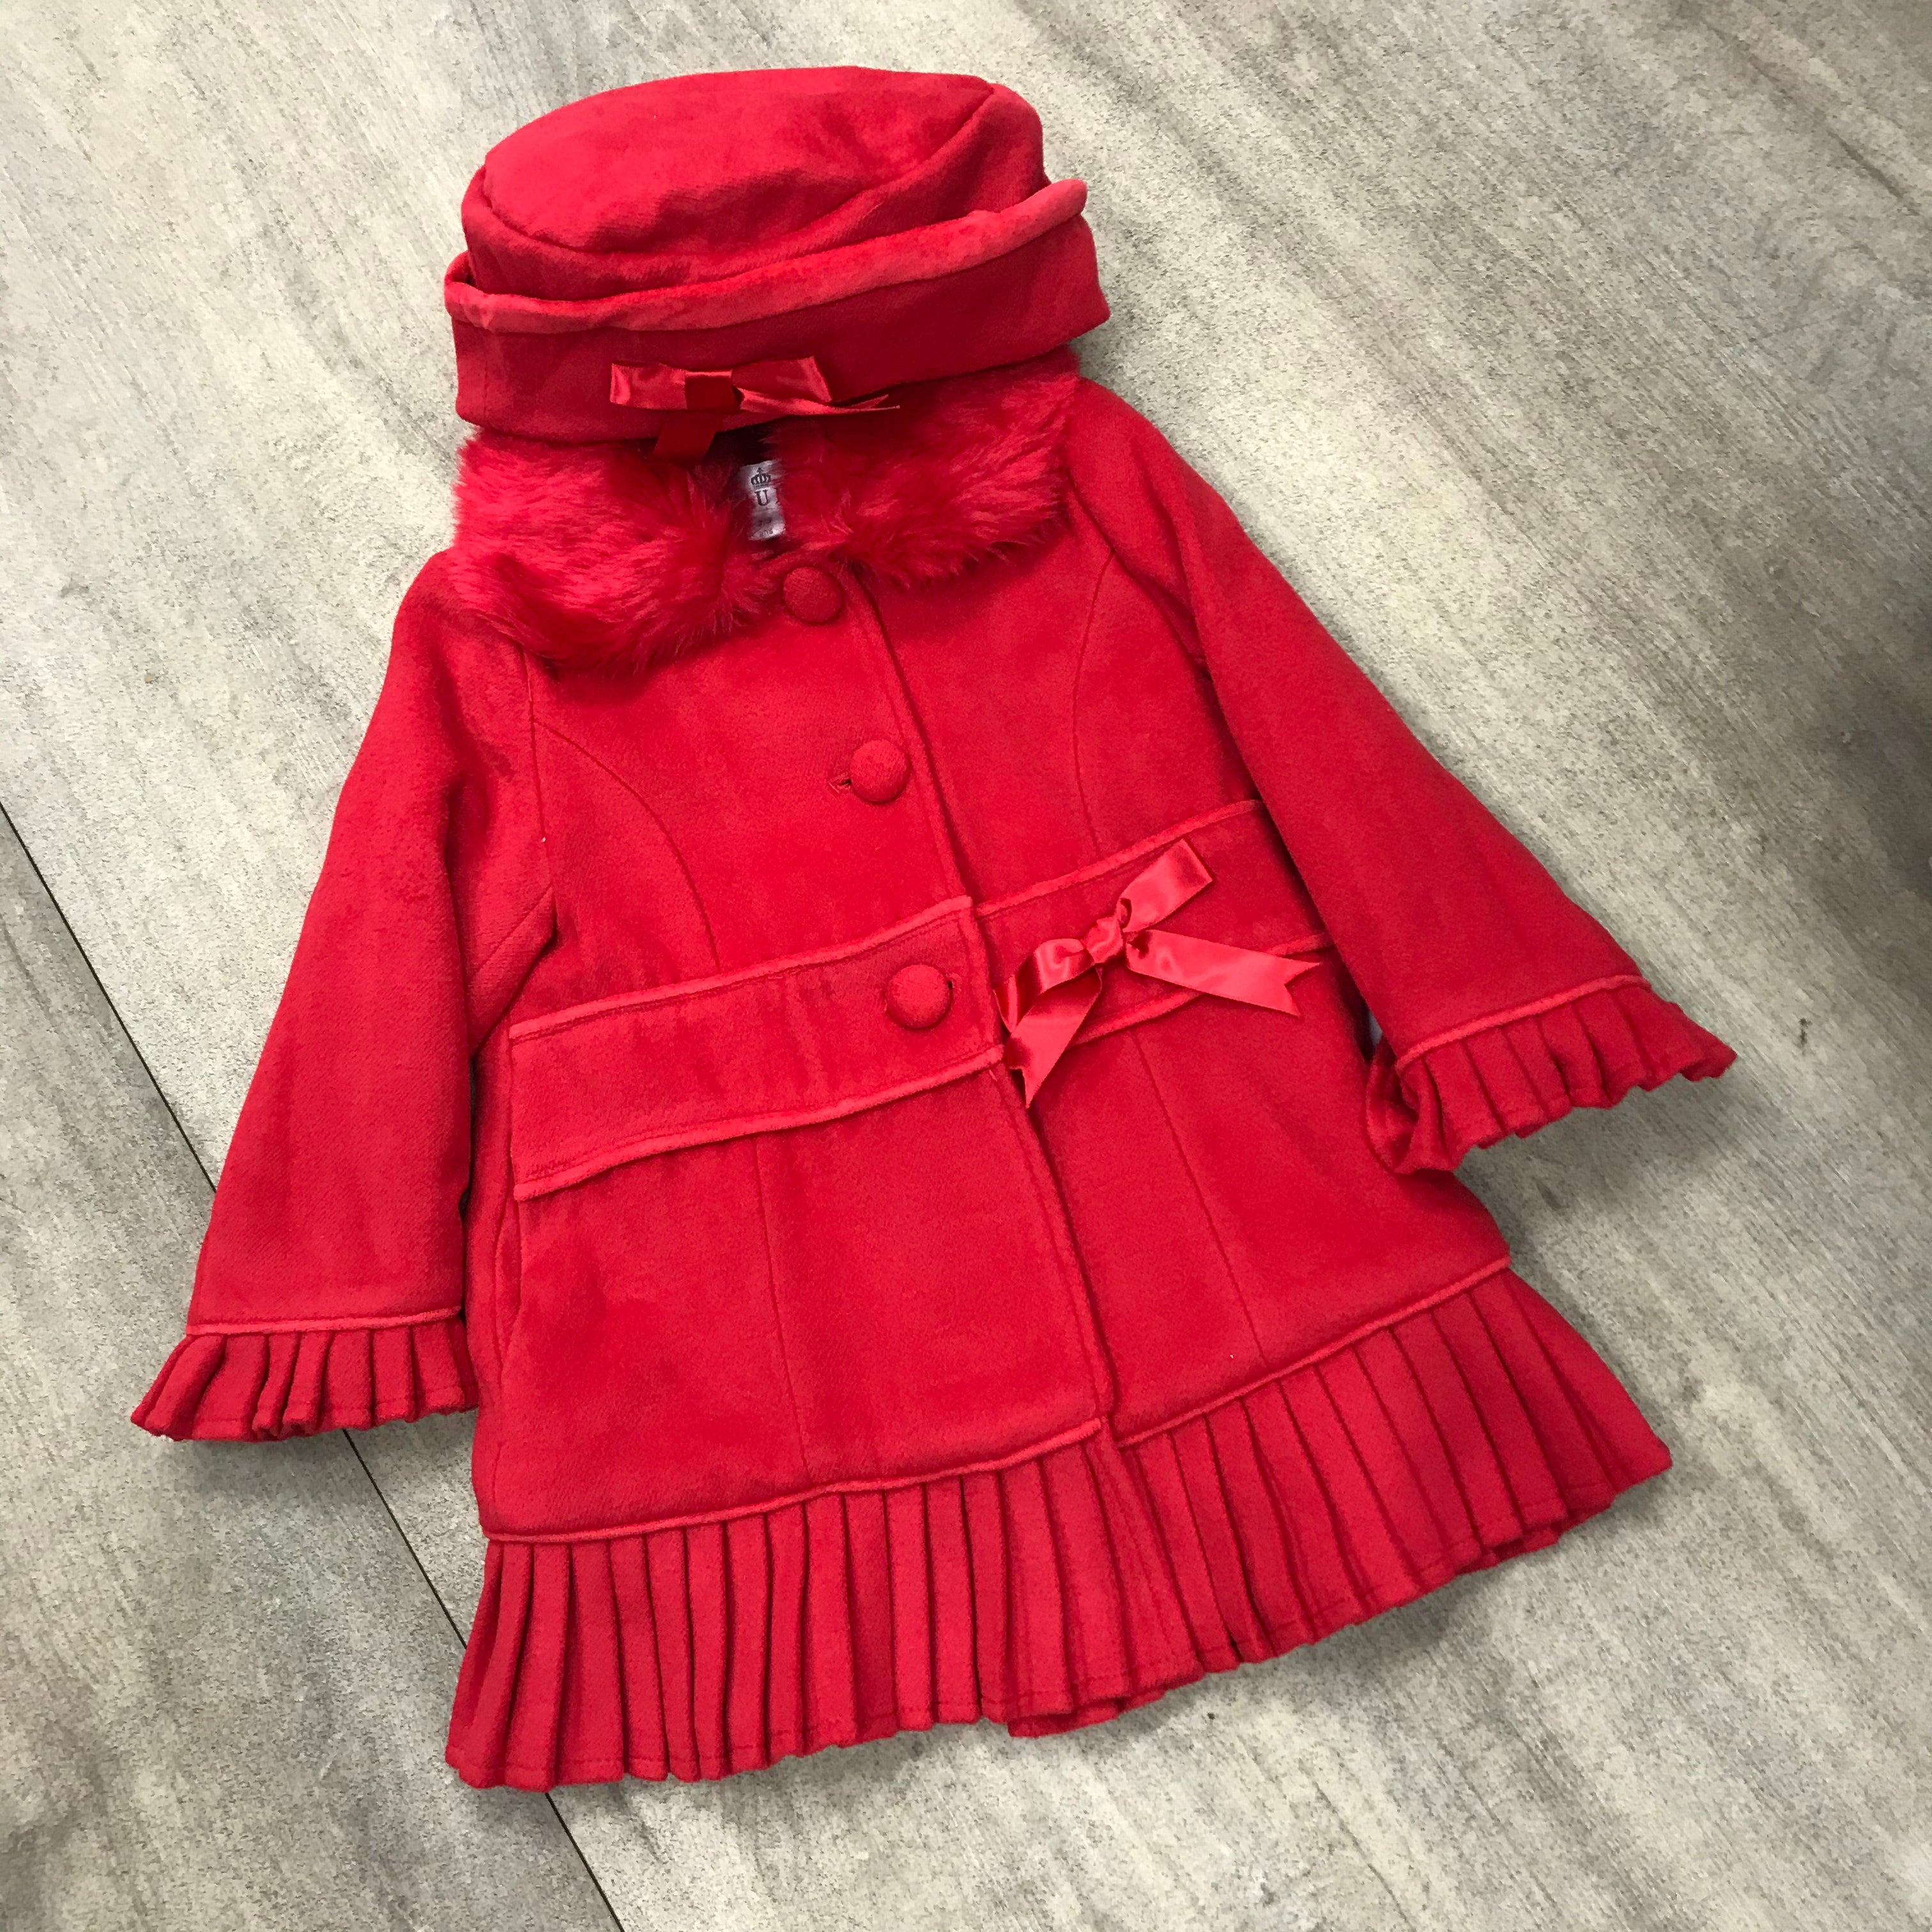 Beau Kid Classic Style Red Coat